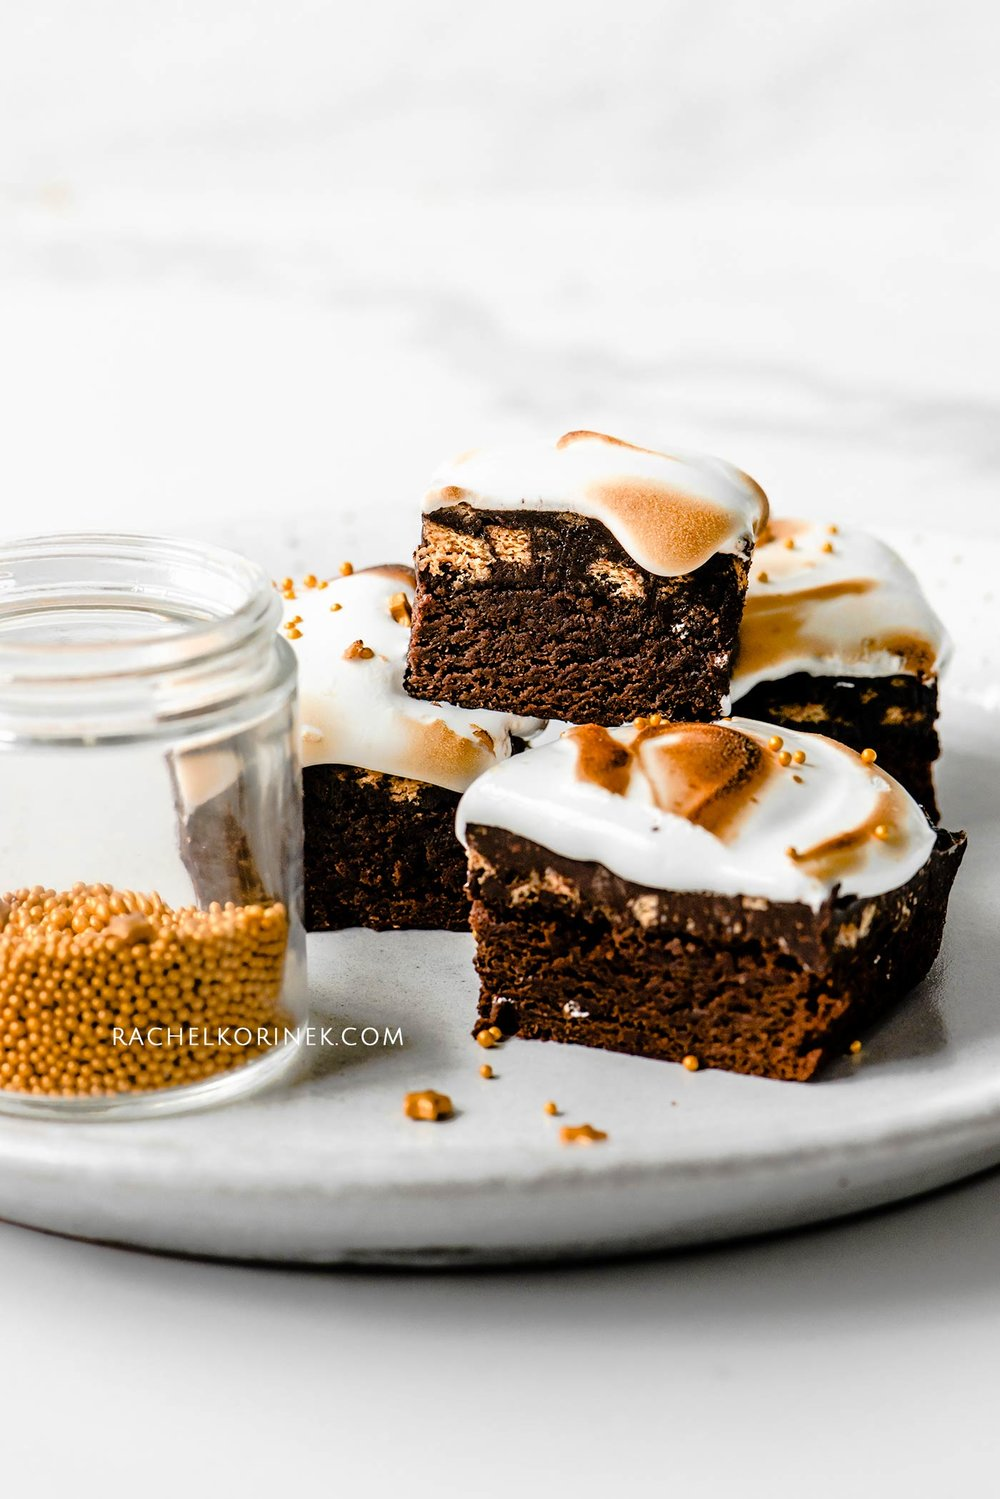 Rachel Korinek | Food Photographer Christmas S'mores Brownies